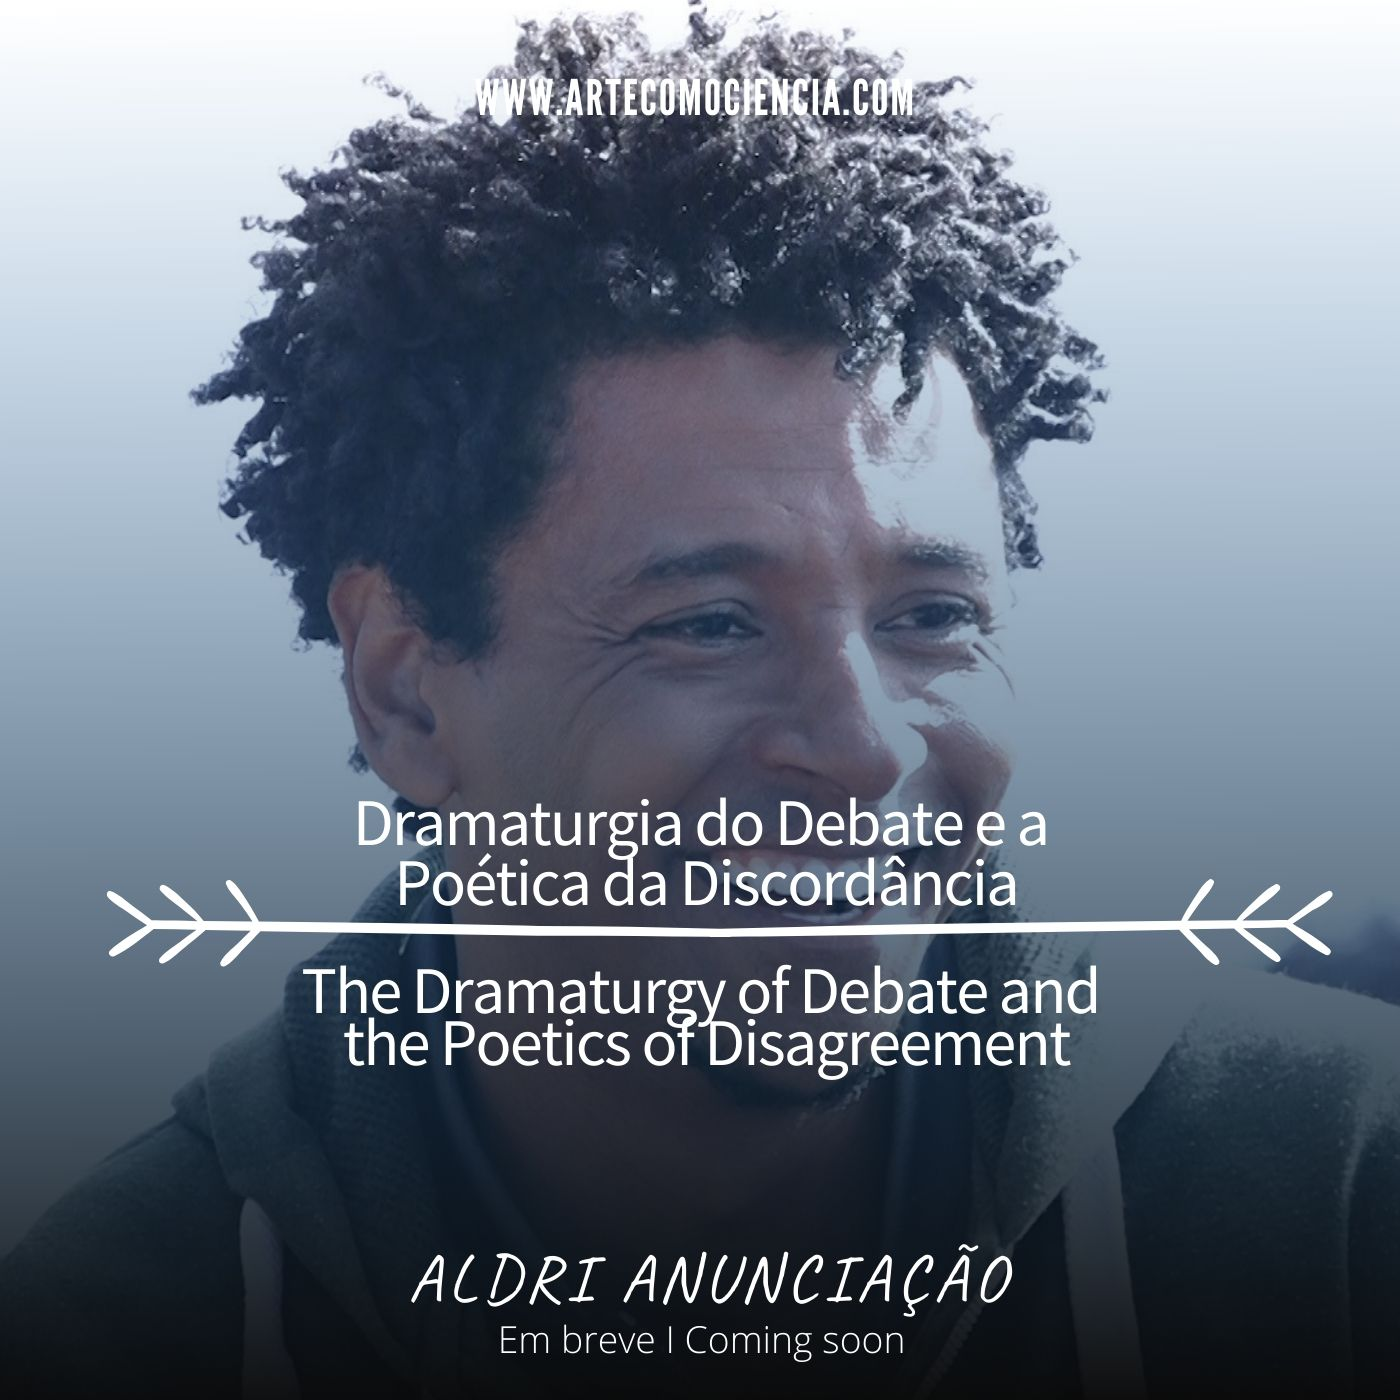 Aldri Anunciação: Dramaturgia do Debate e a Poética da Discordância/ The Dramaturgy of Debate and th